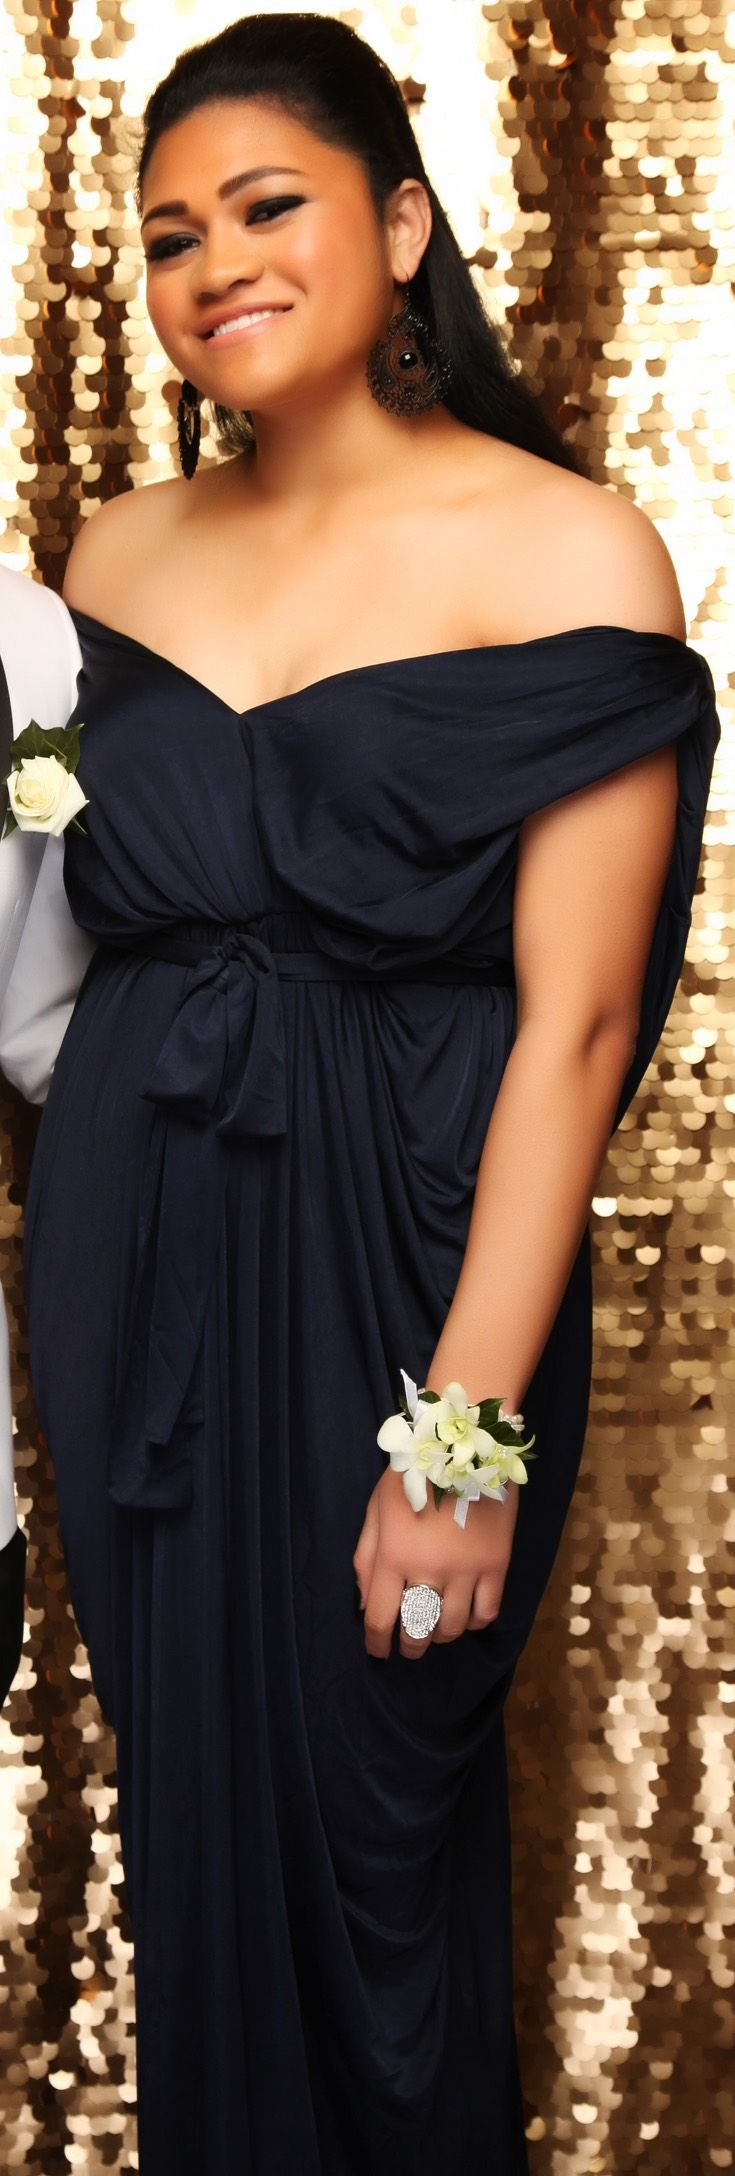 Lynfield Ball 2015. Adore this gown! www.whitedoor.co.nz